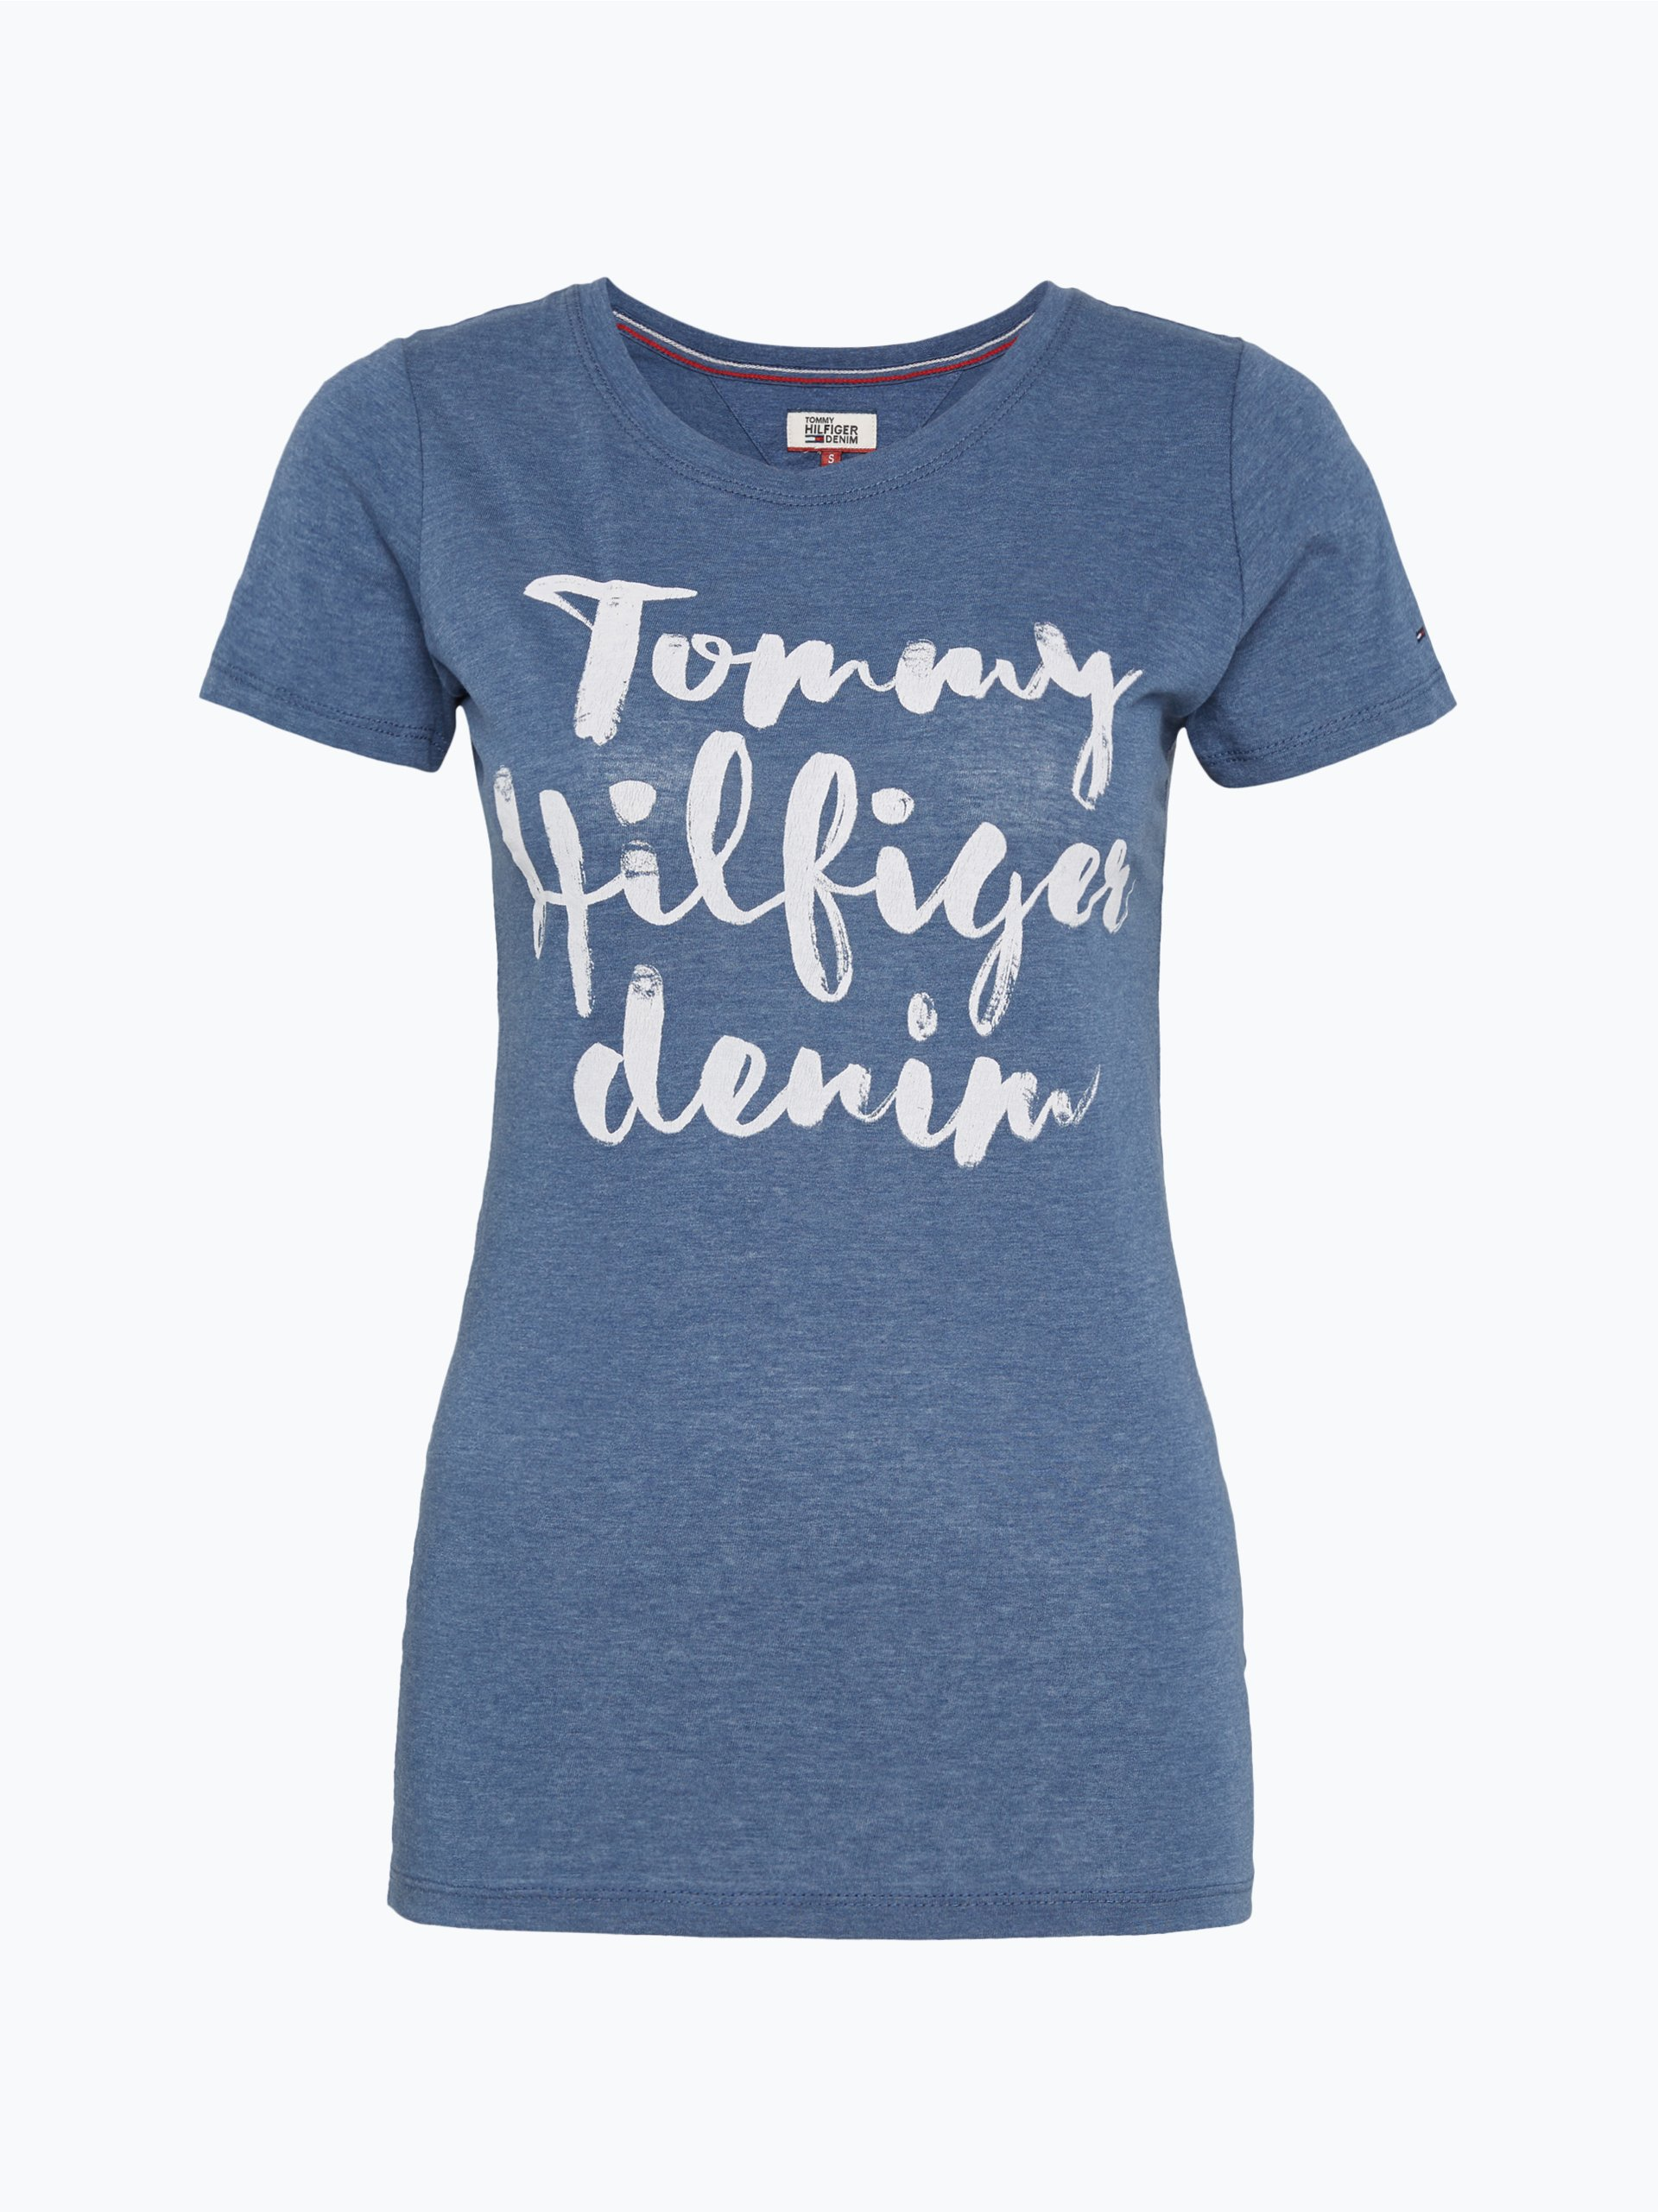 hilfiger denim damen t shirt blau uni online kaufen. Black Bedroom Furniture Sets. Home Design Ideas